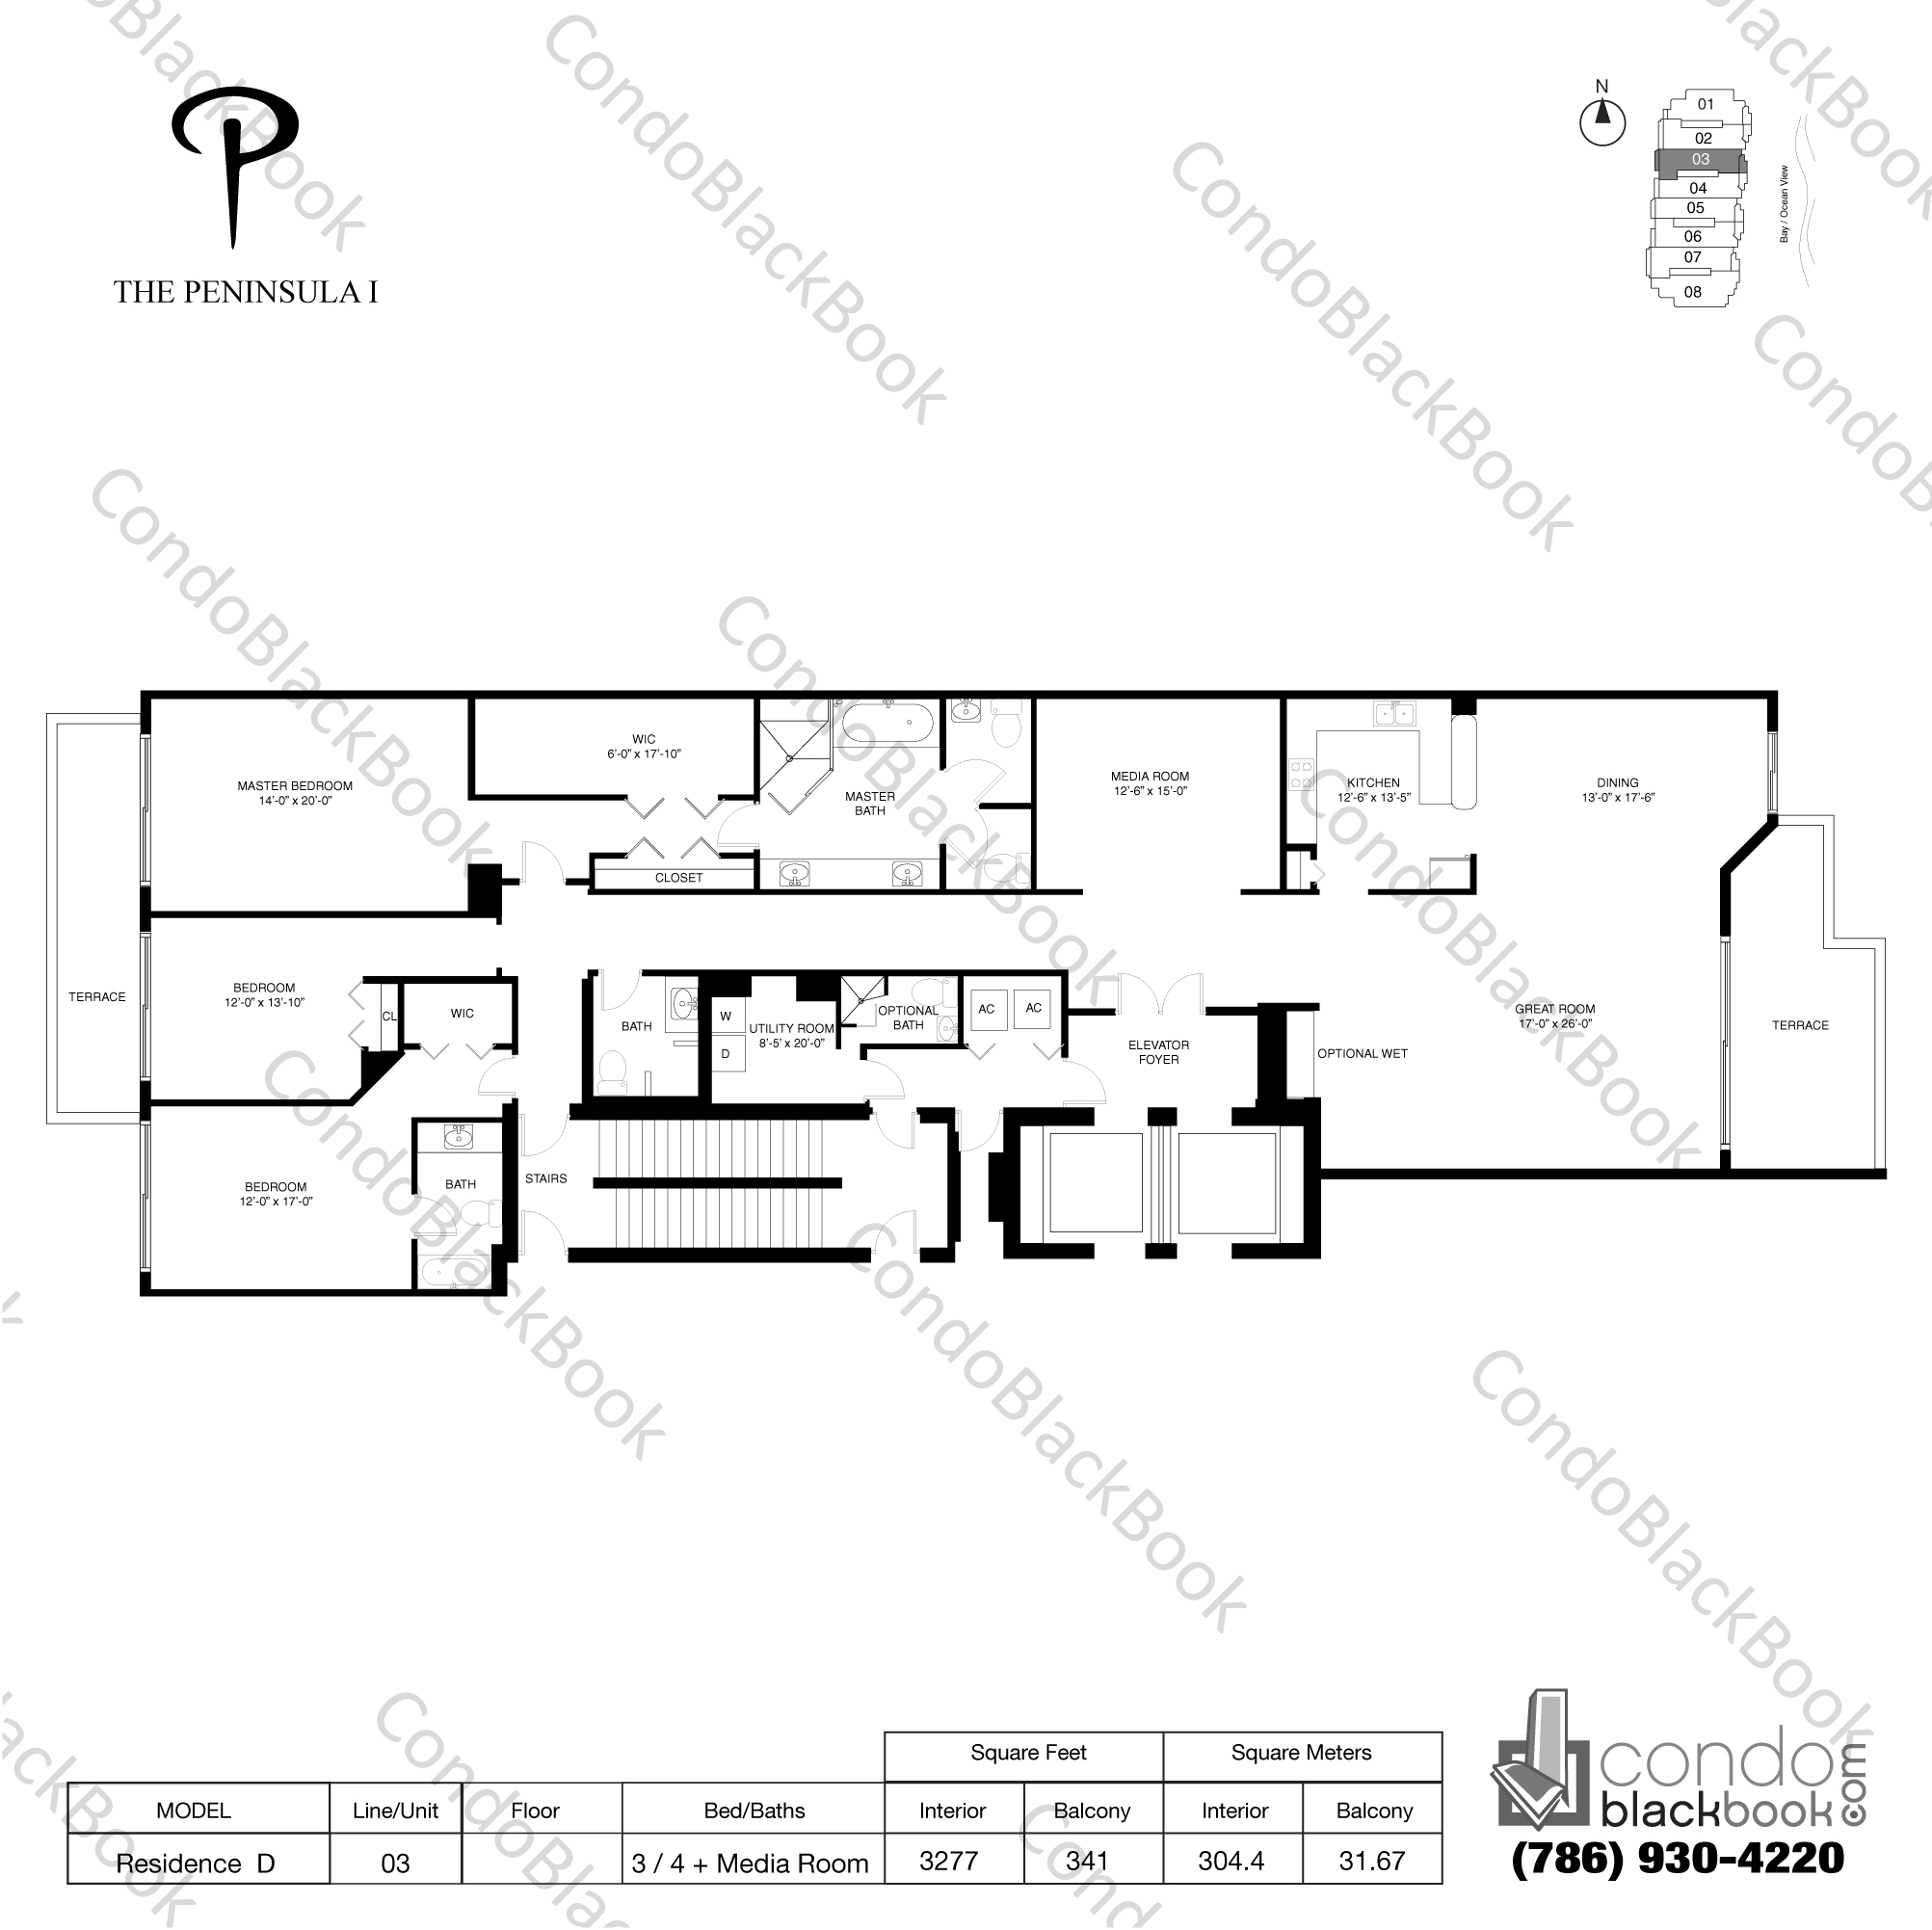 Floor plan for Peninsula Aventura, model Residence D, line 03, 3 / 4 + Media room bedrooms, 3277 sq ft